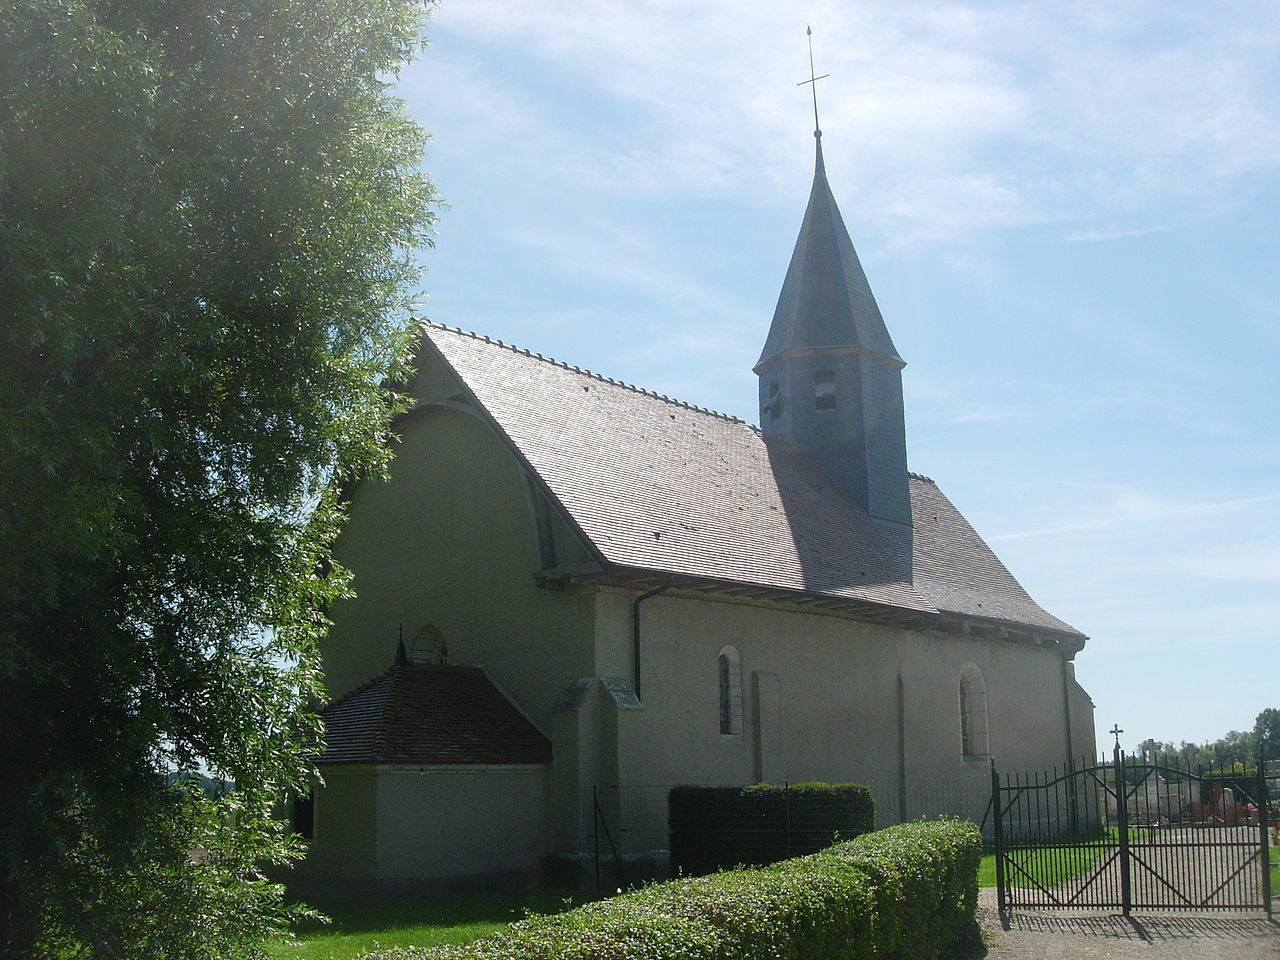 Eglise de Saint-Christophe